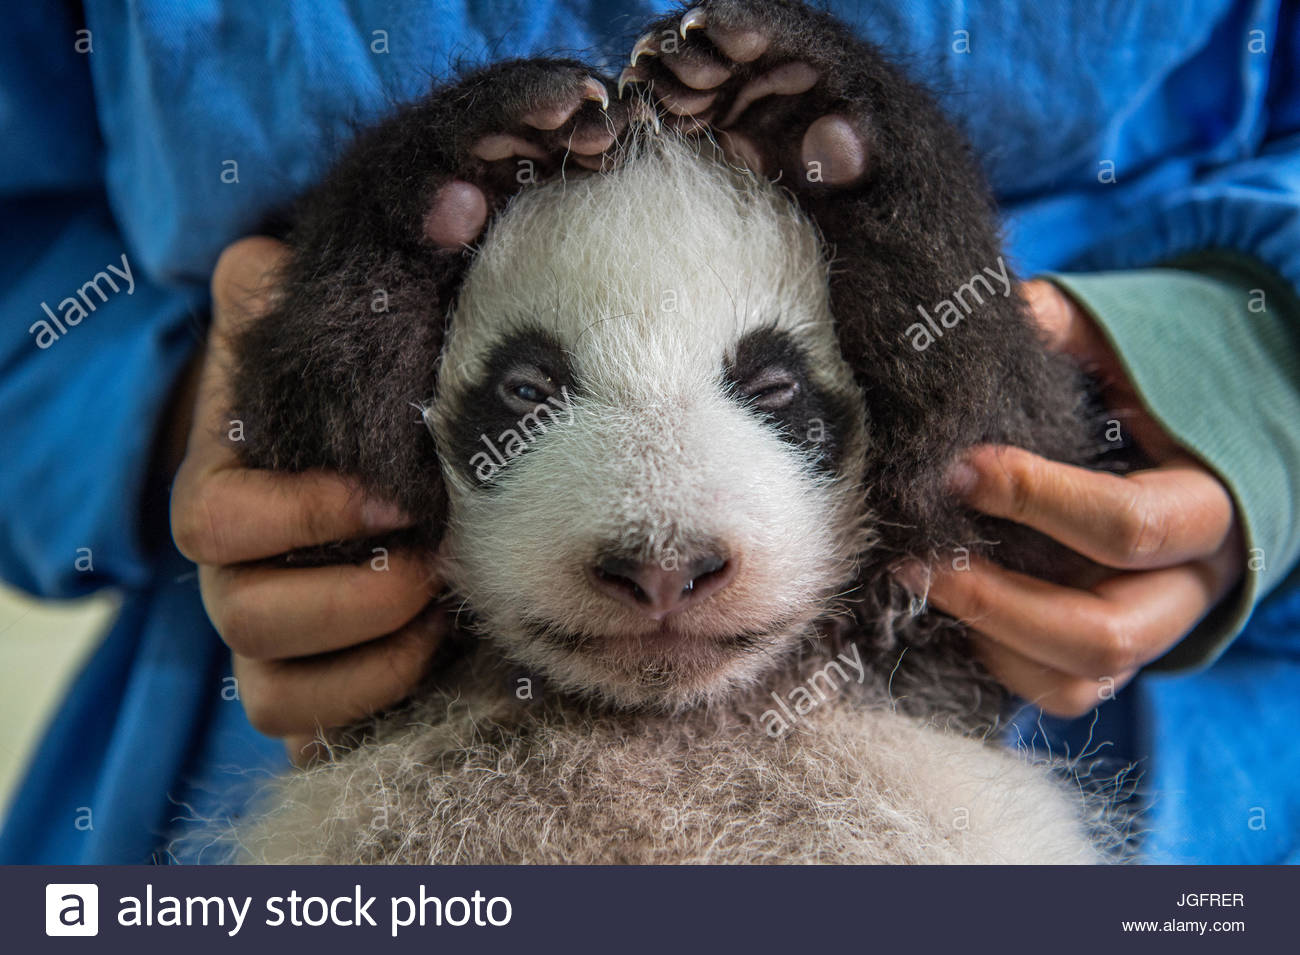 A two month old giant panda cub is cared for at the Bifengxia Giant Panda Breeding and Research Center in Sichuan - Stock Image